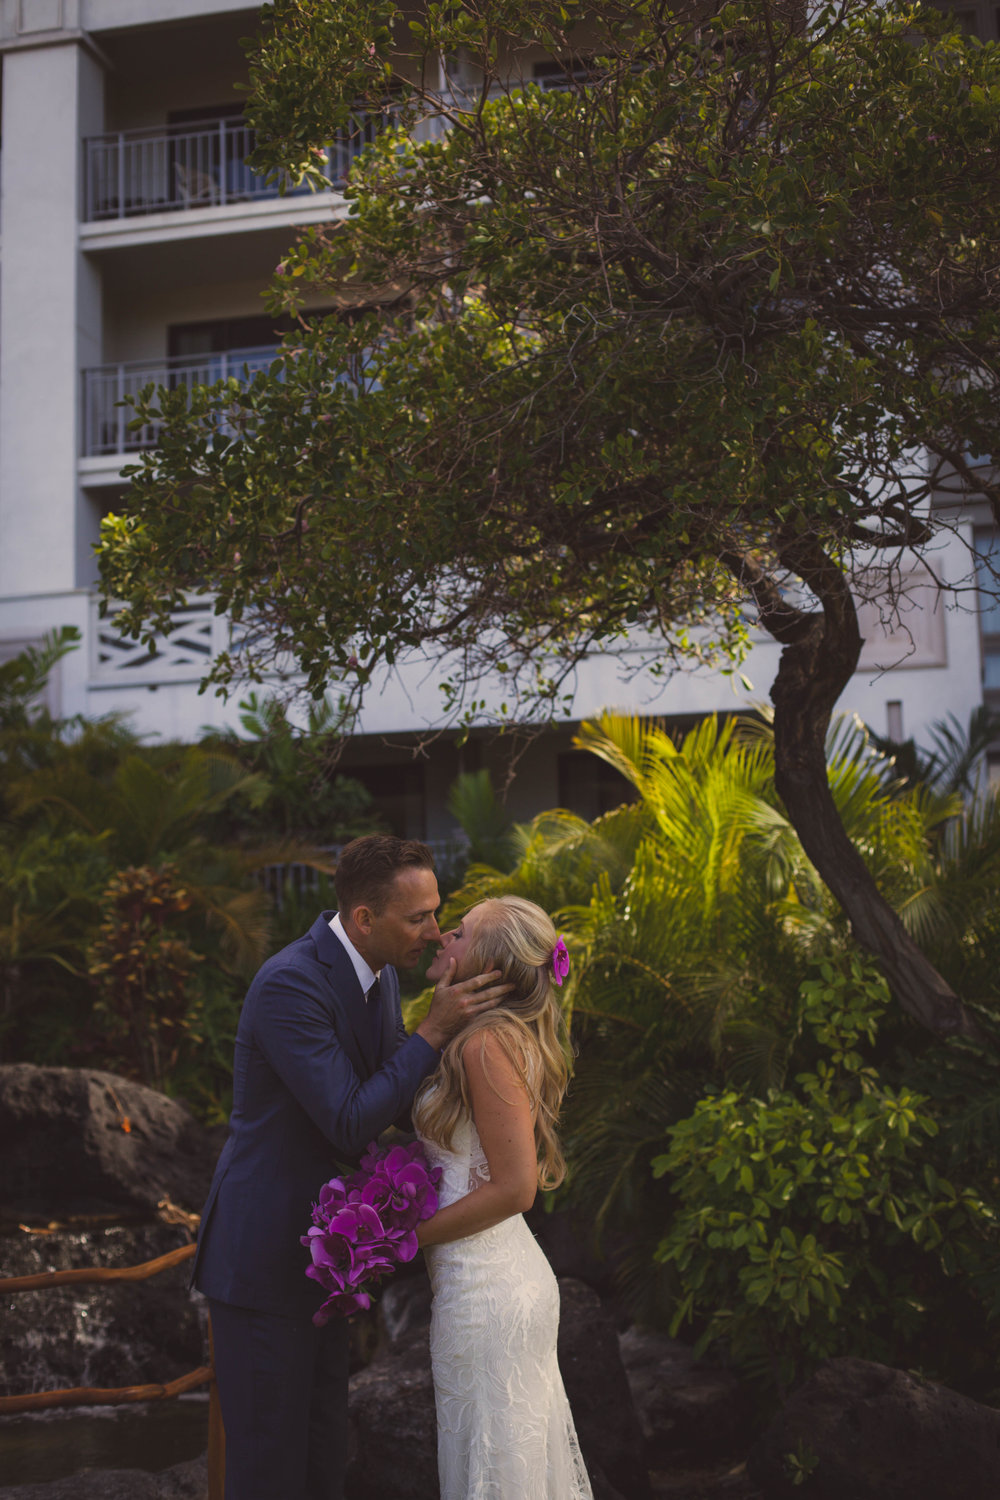 big island hawaii fairmont orchid beach wedding © kelilina photography 20170812161240-1.jpg